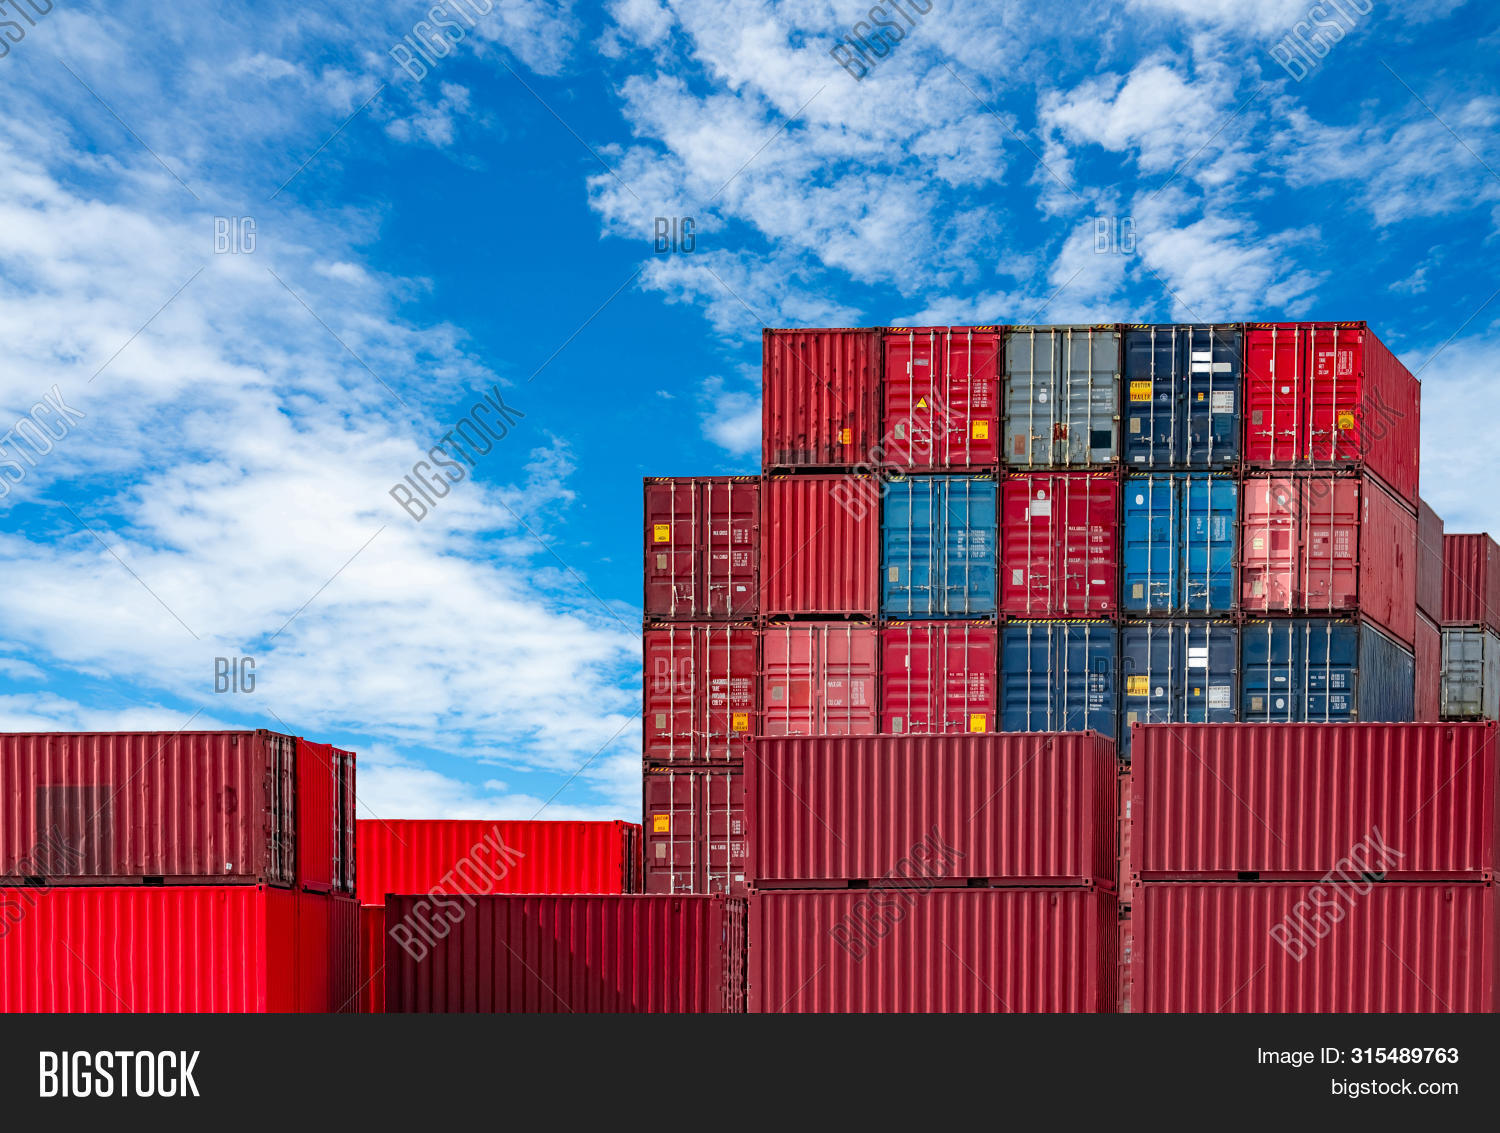 blue,box,bulk,business,cargo,chain,clouds,commerce,commercial,construction,container,customs,delivery,dock,economy,export,freight,global,goods,green,harbor,heavy,import,industrial,industry,international,logistic,merchandise,pattern,pier,port,red,sea,ship,shipment,shipping,shipyard,sky,stack,stockpile,supply,terminal,trade,transport,transportation,truck,warehouse,white,yard